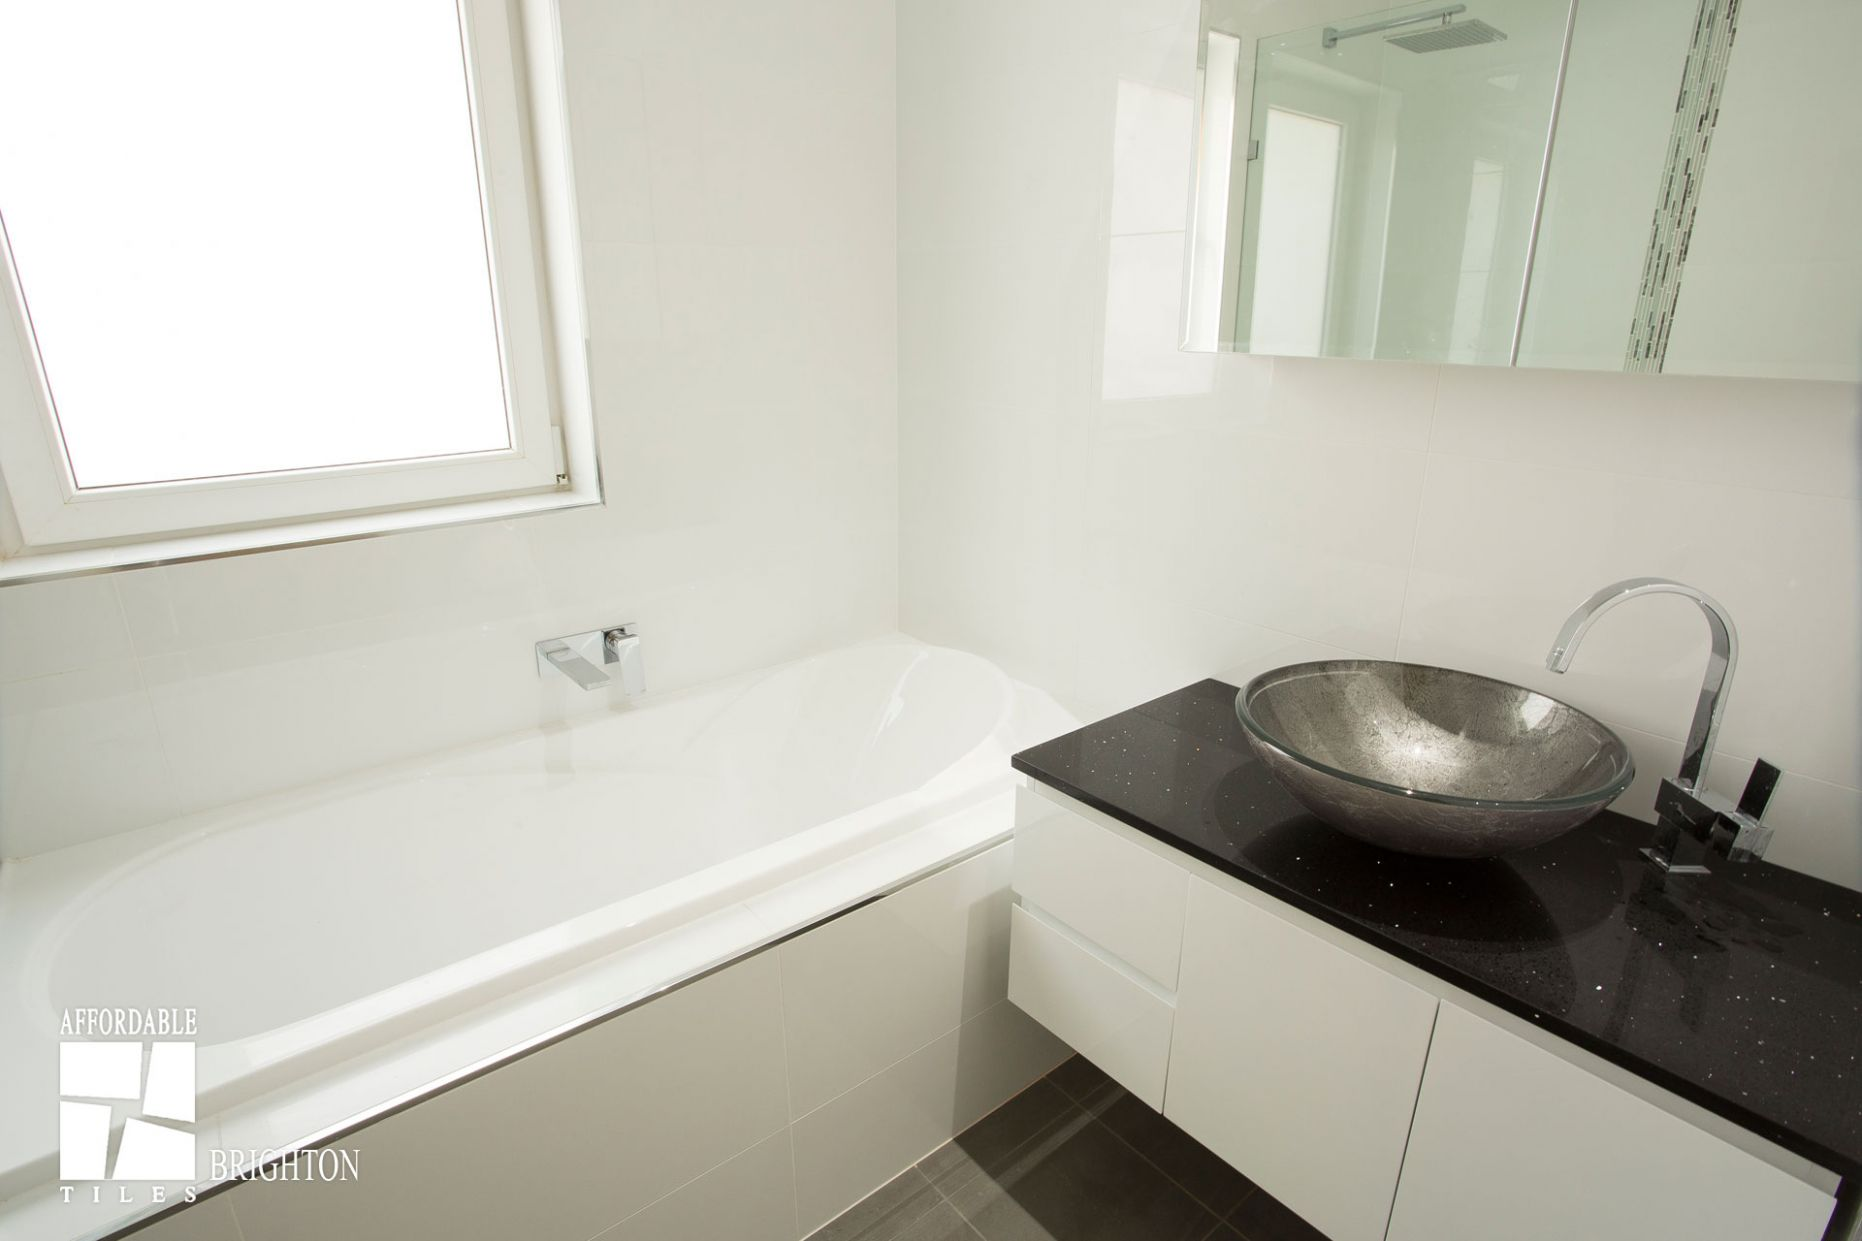 Bathroom | Products & Services | Affordable Tiles Adelaide - bathroom ideas adelaide